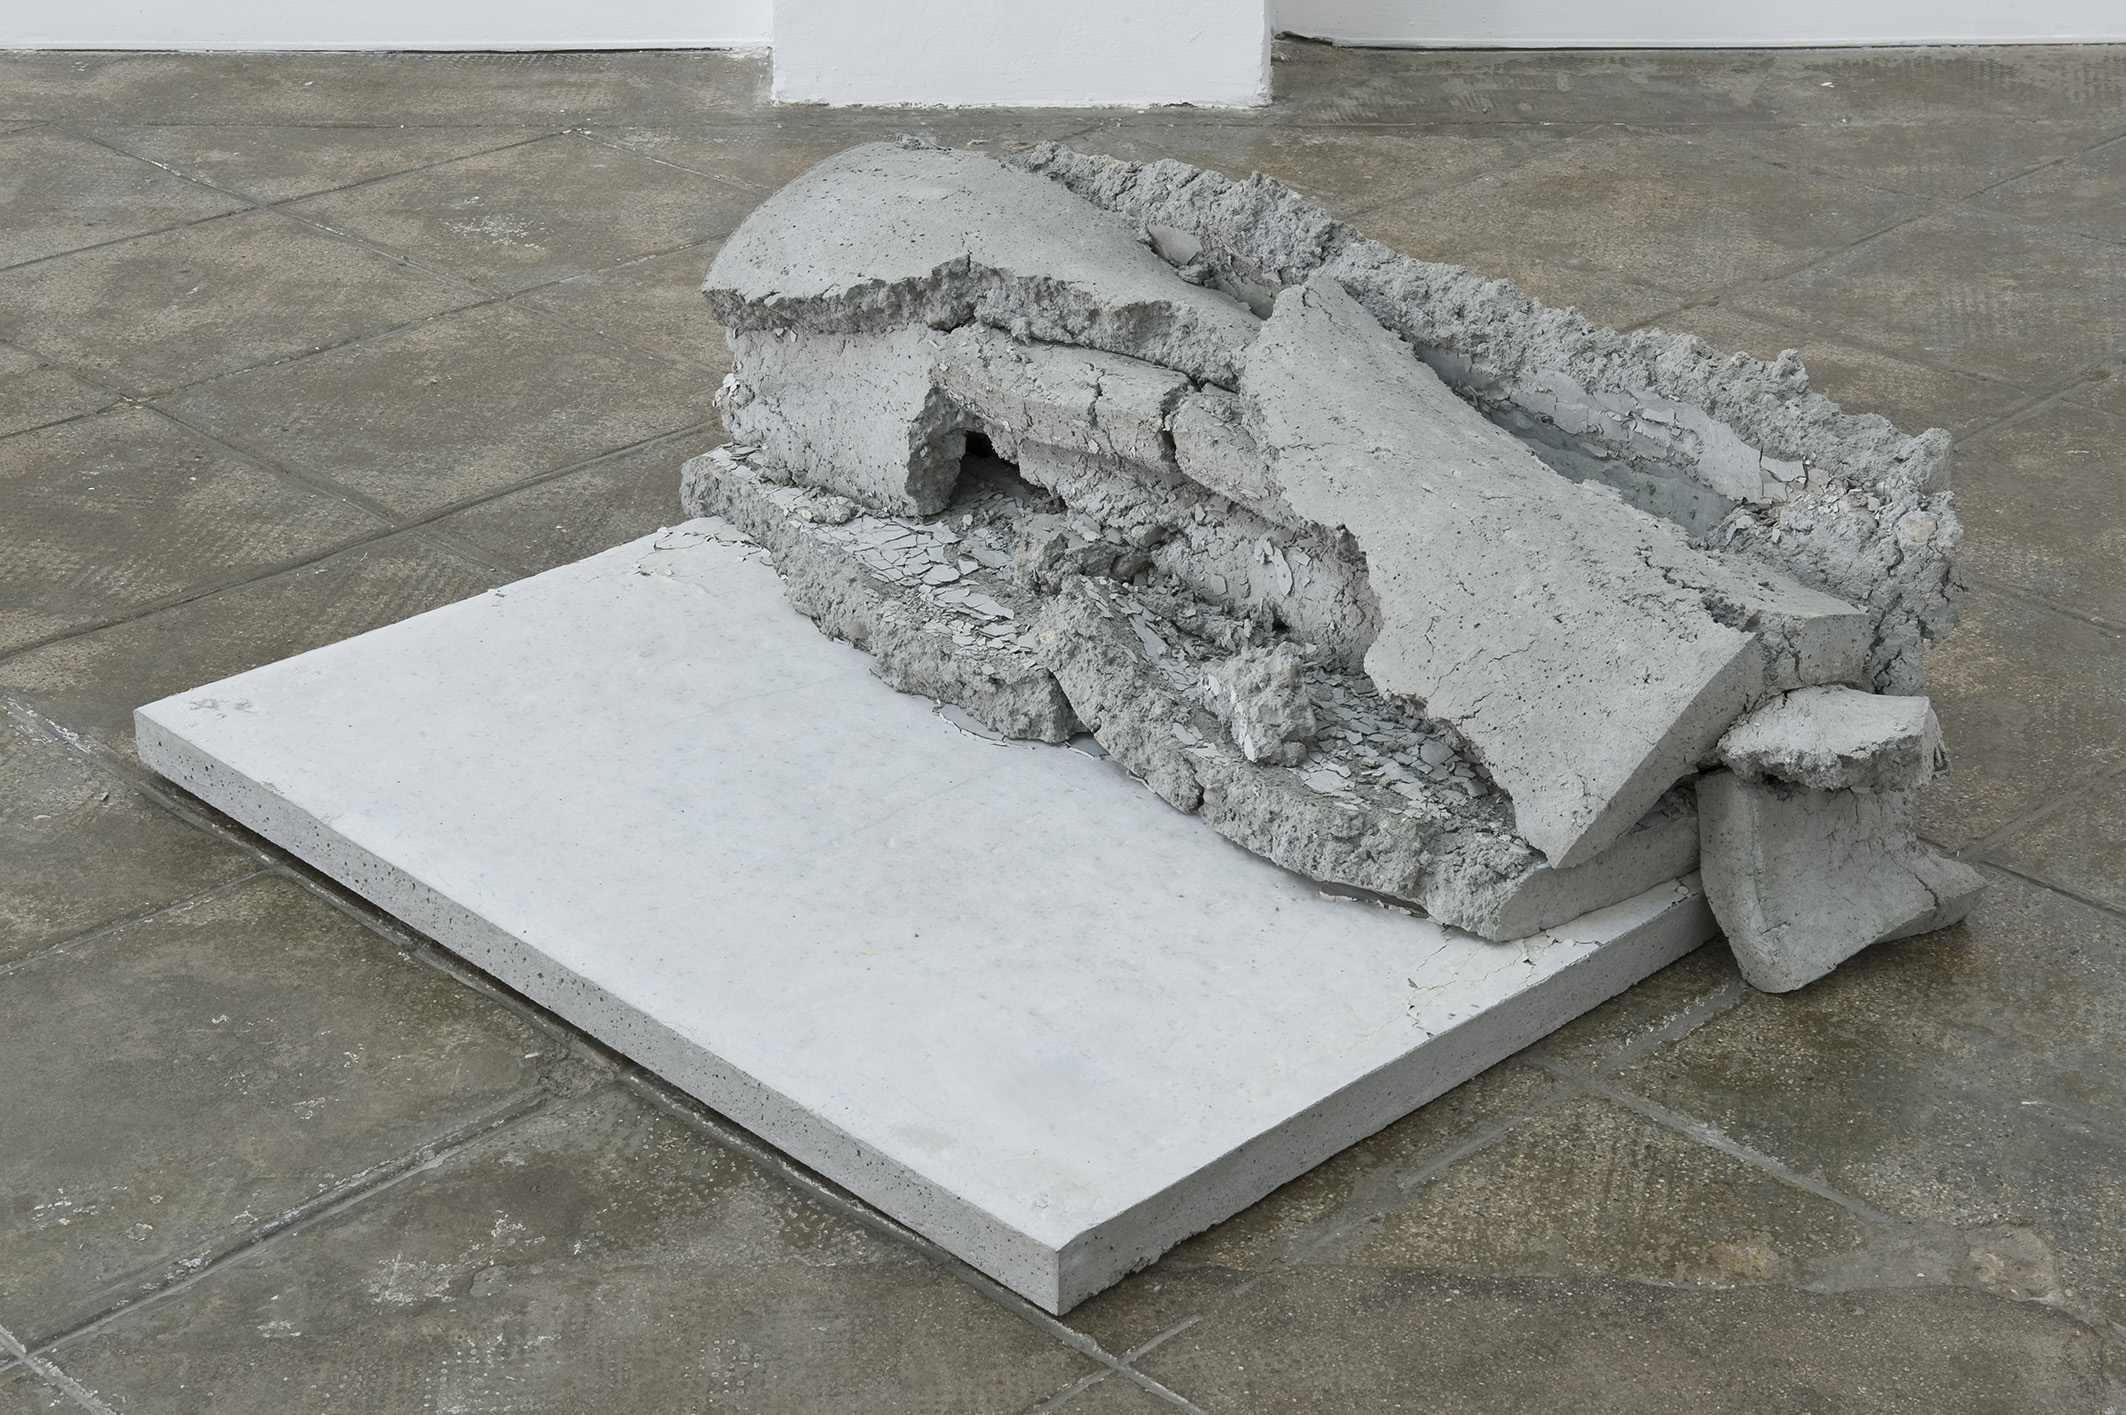 CHRISTOPH WEBER. Not yet titled, 2013 | Map, Record, Picture, Sculpture | ProjecteSD